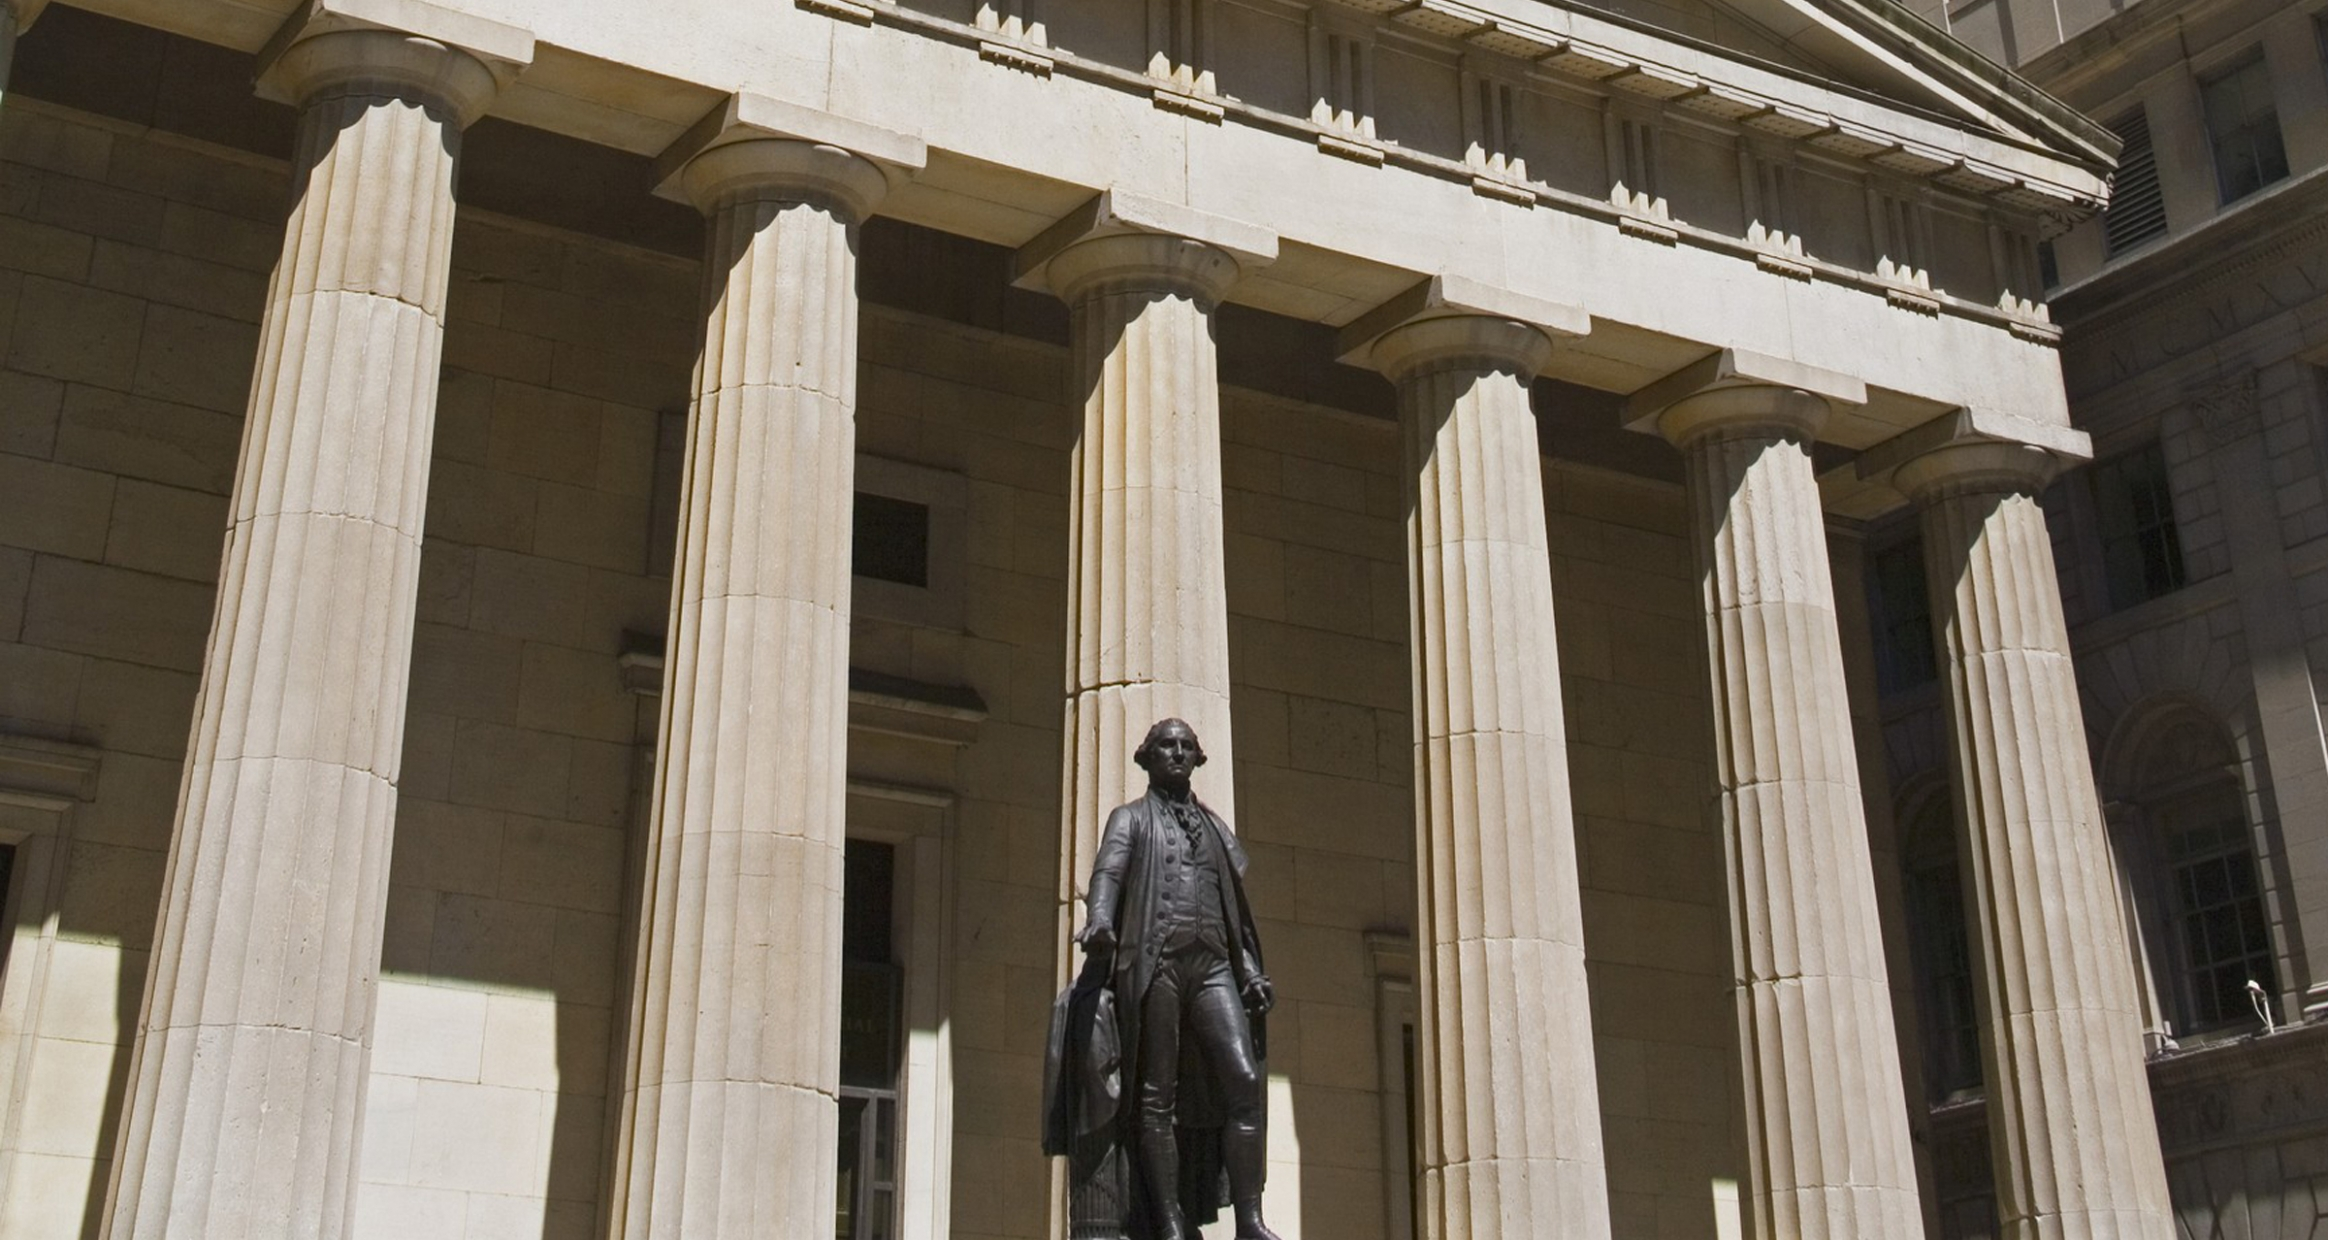 Exterior detail shot of Federal Hall and George Washington statue